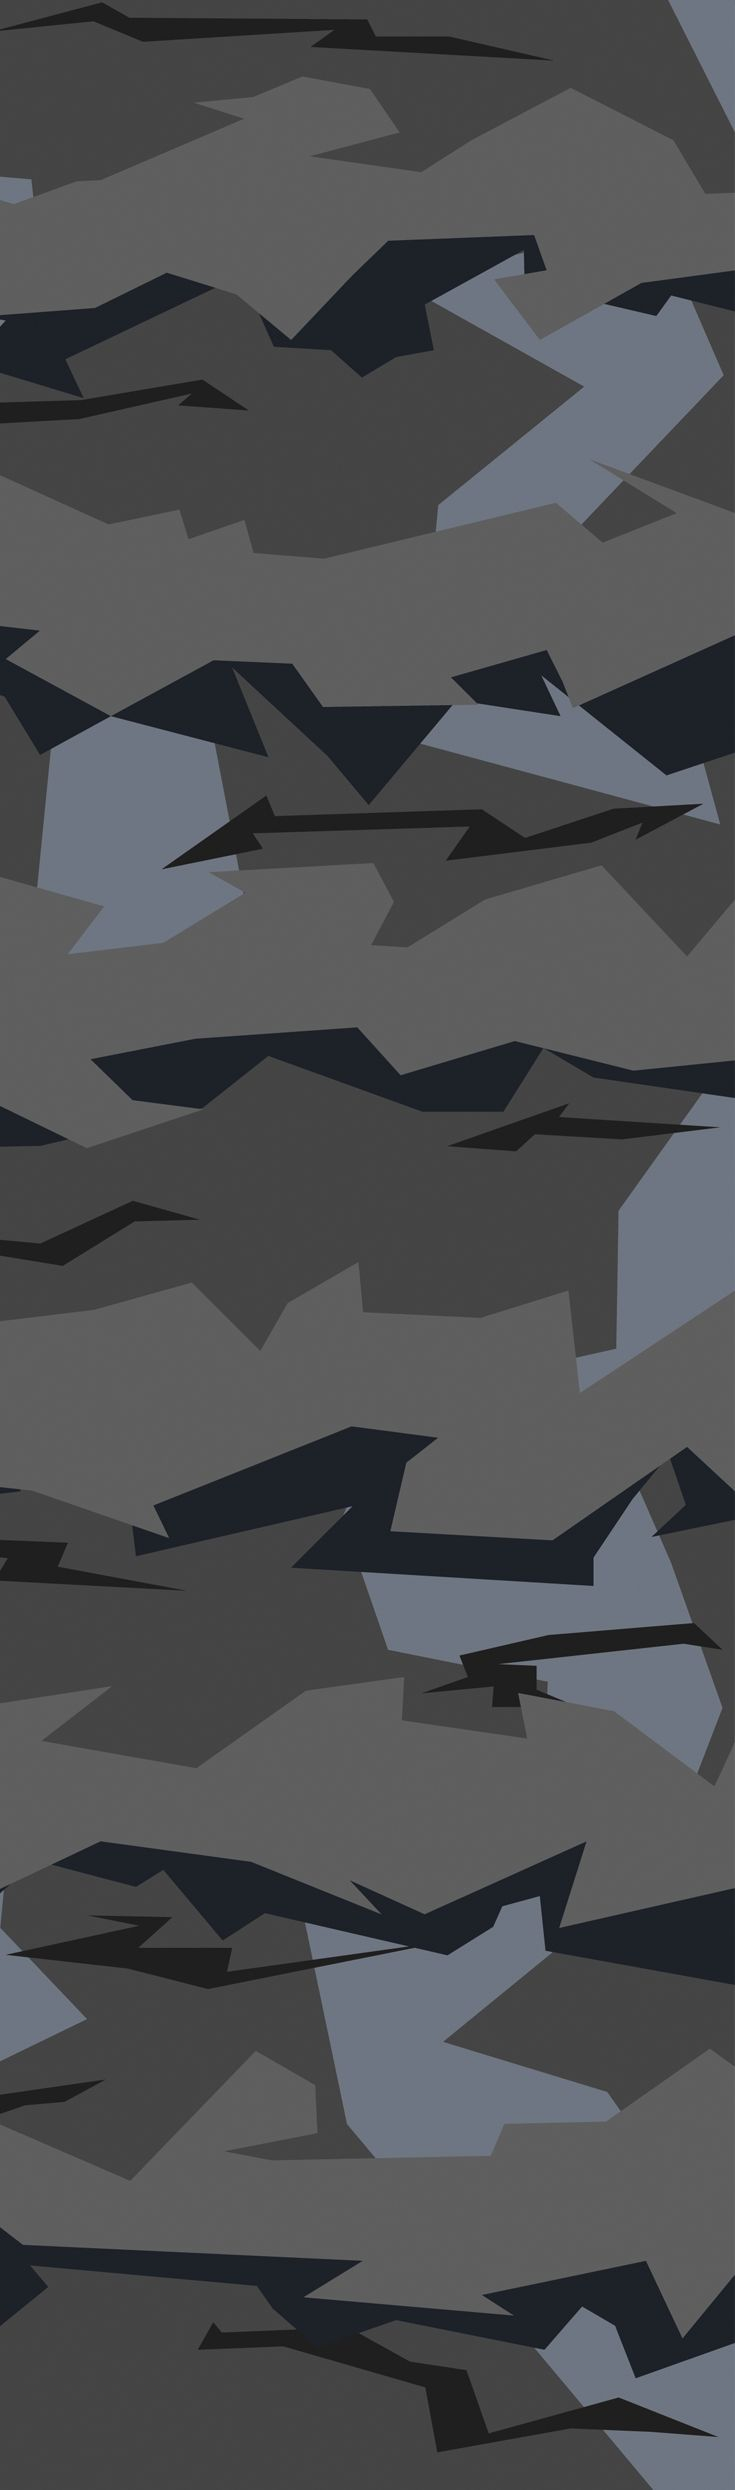 Vector camo pack 43 pcs instant download. Camouflage vector design. #camo #camouflage #army #military #colors #textures #patterns #vector #vectorworks #vectorcamo #realisticcamouflage #realcamo #vectordesign #vectorcamouflage #armypattern #camodesign #instantdownload #vectordownload #downloadcamouflage